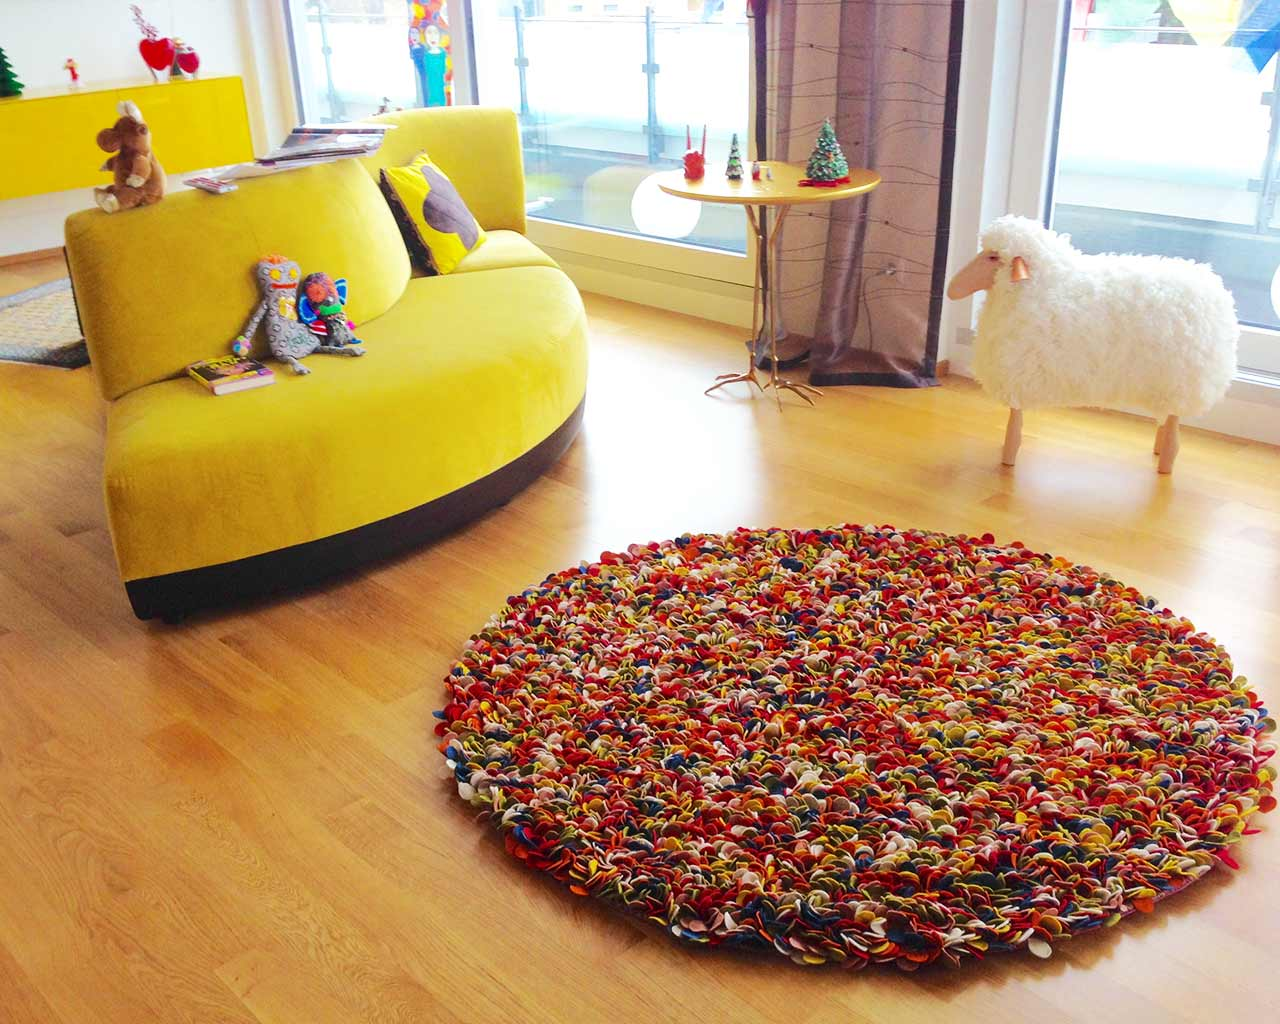 multi colour wool felted rugs yellow sofa wooden flooring white sheep